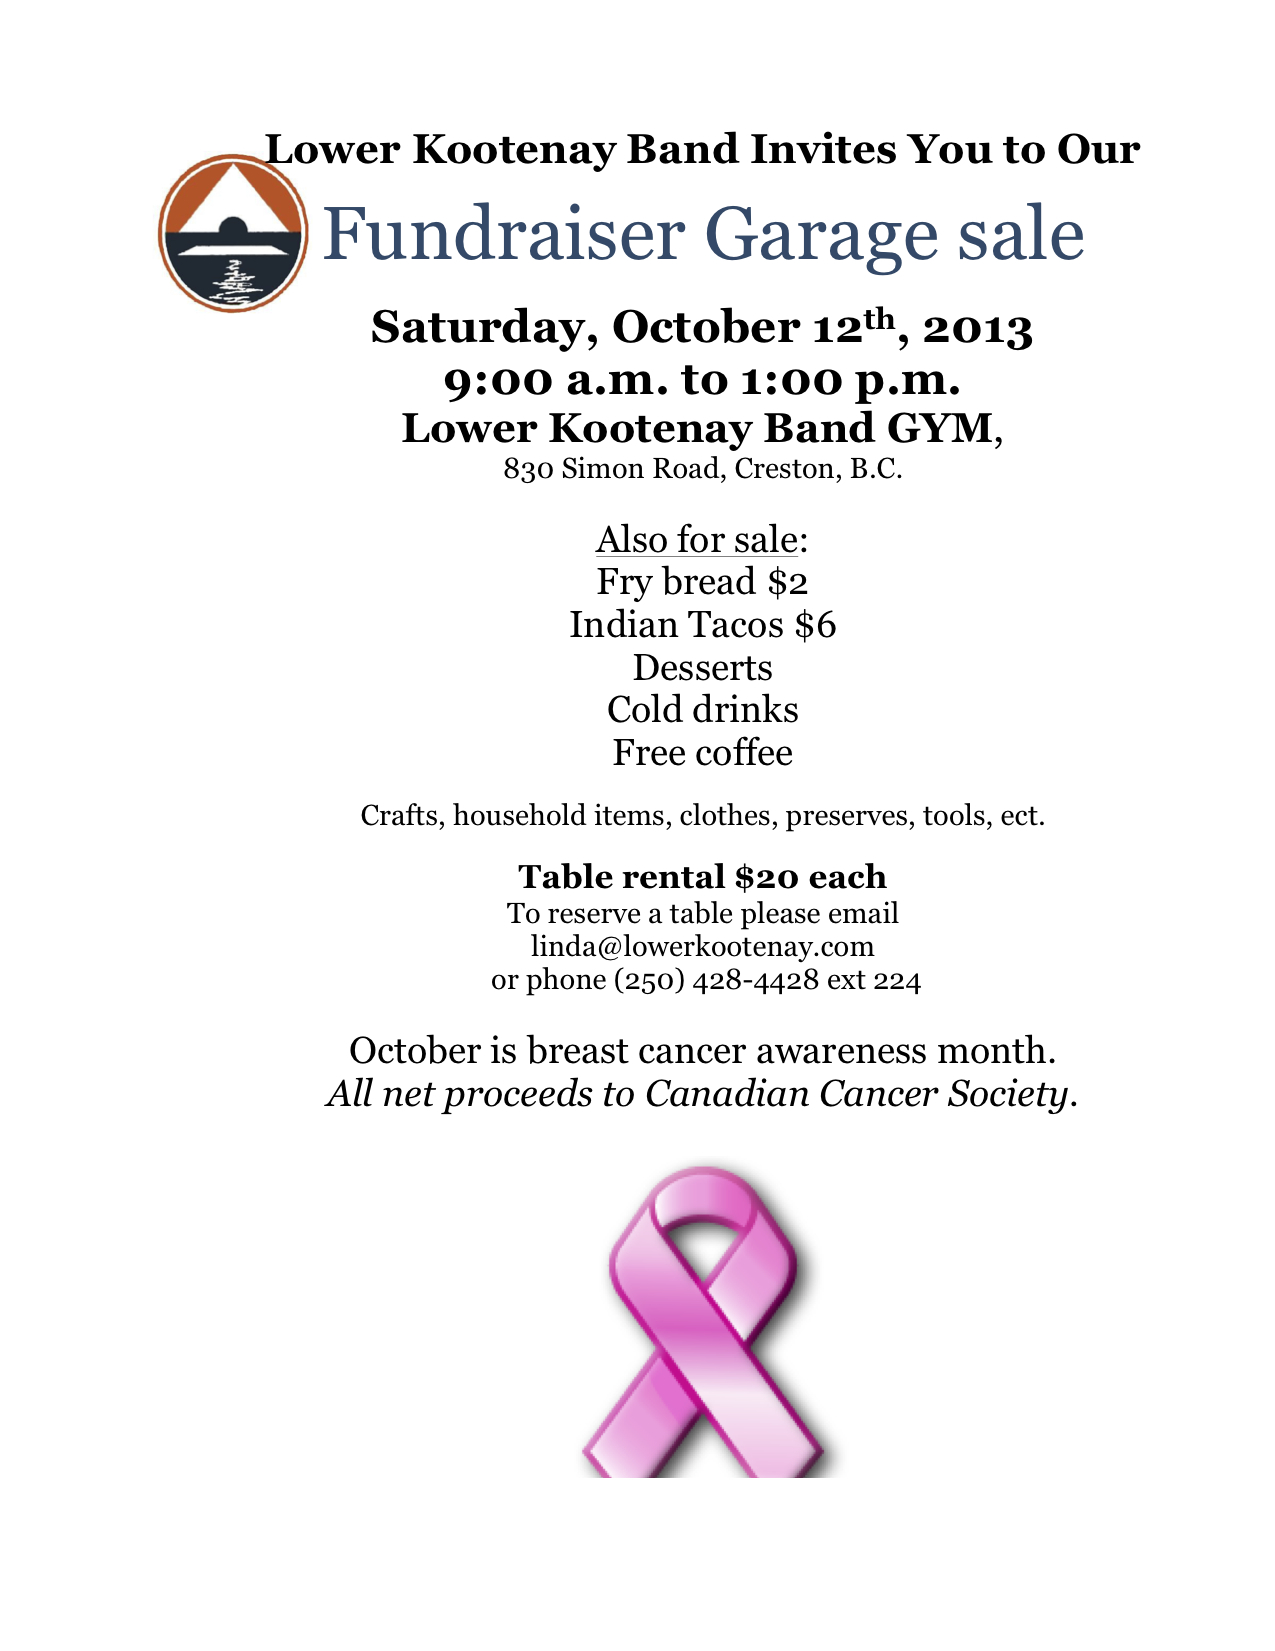 Garage sale.LKB. Oct 12 2013